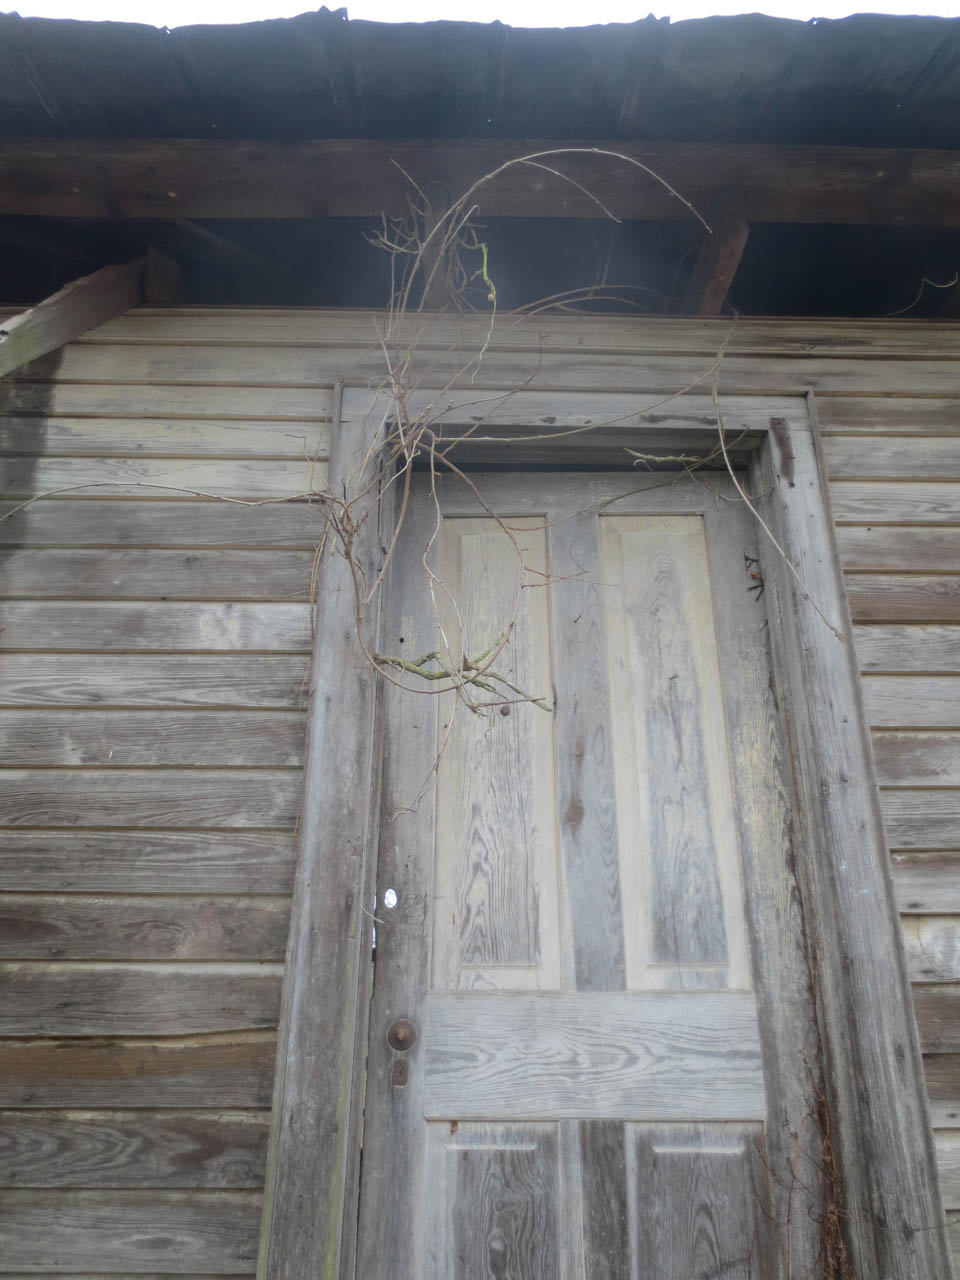 rw_sharecroppers cabin-3688.jpg